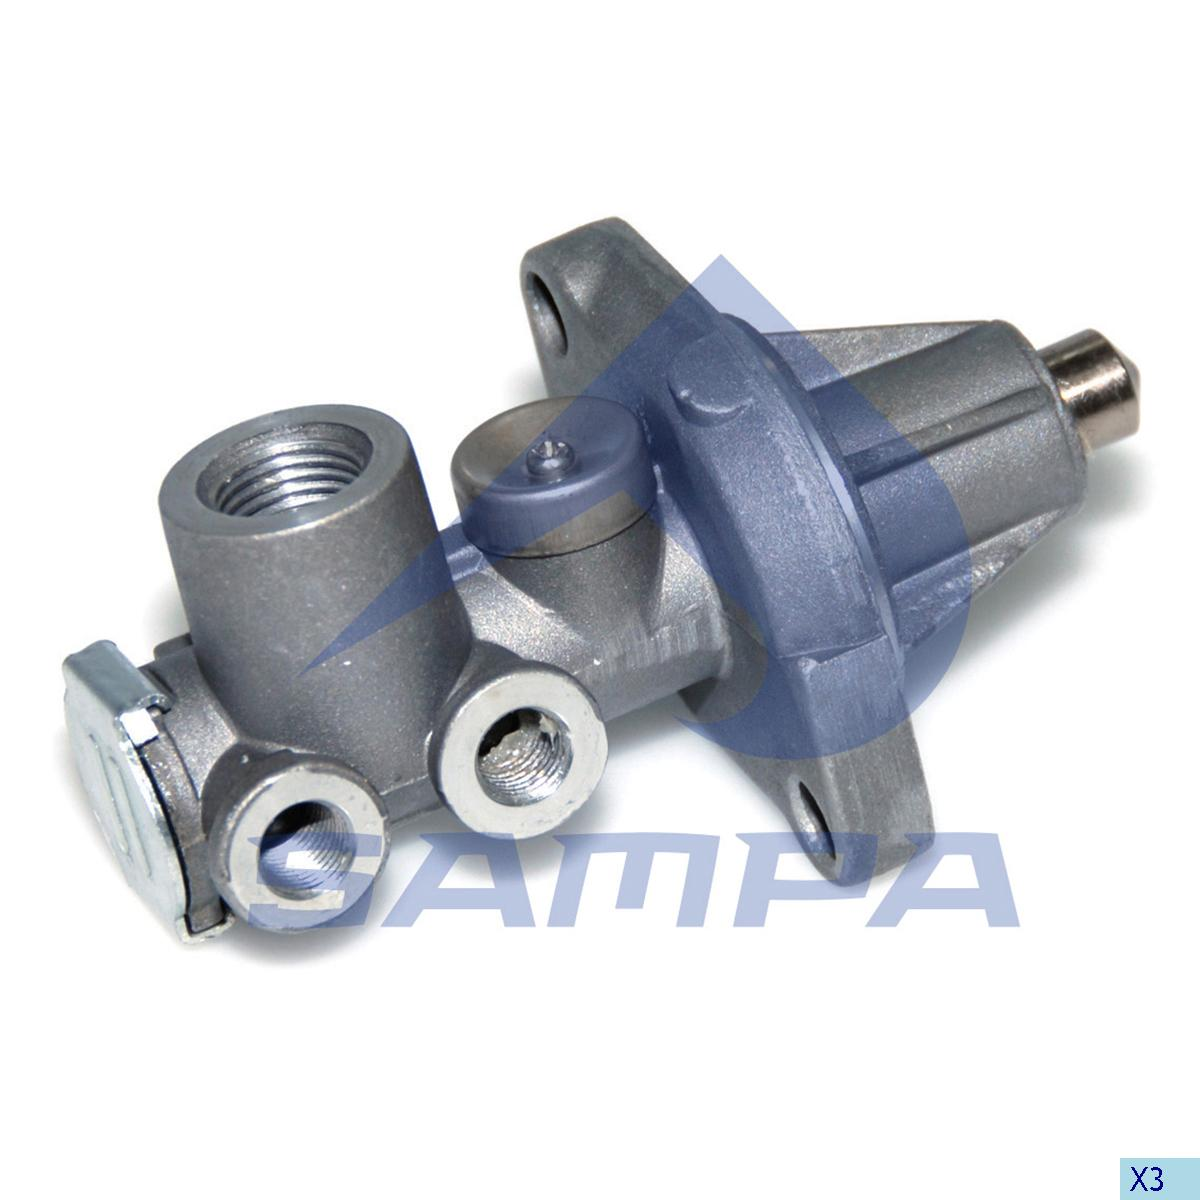 Valve, Gear Box Housing, Volvo, Gear Box